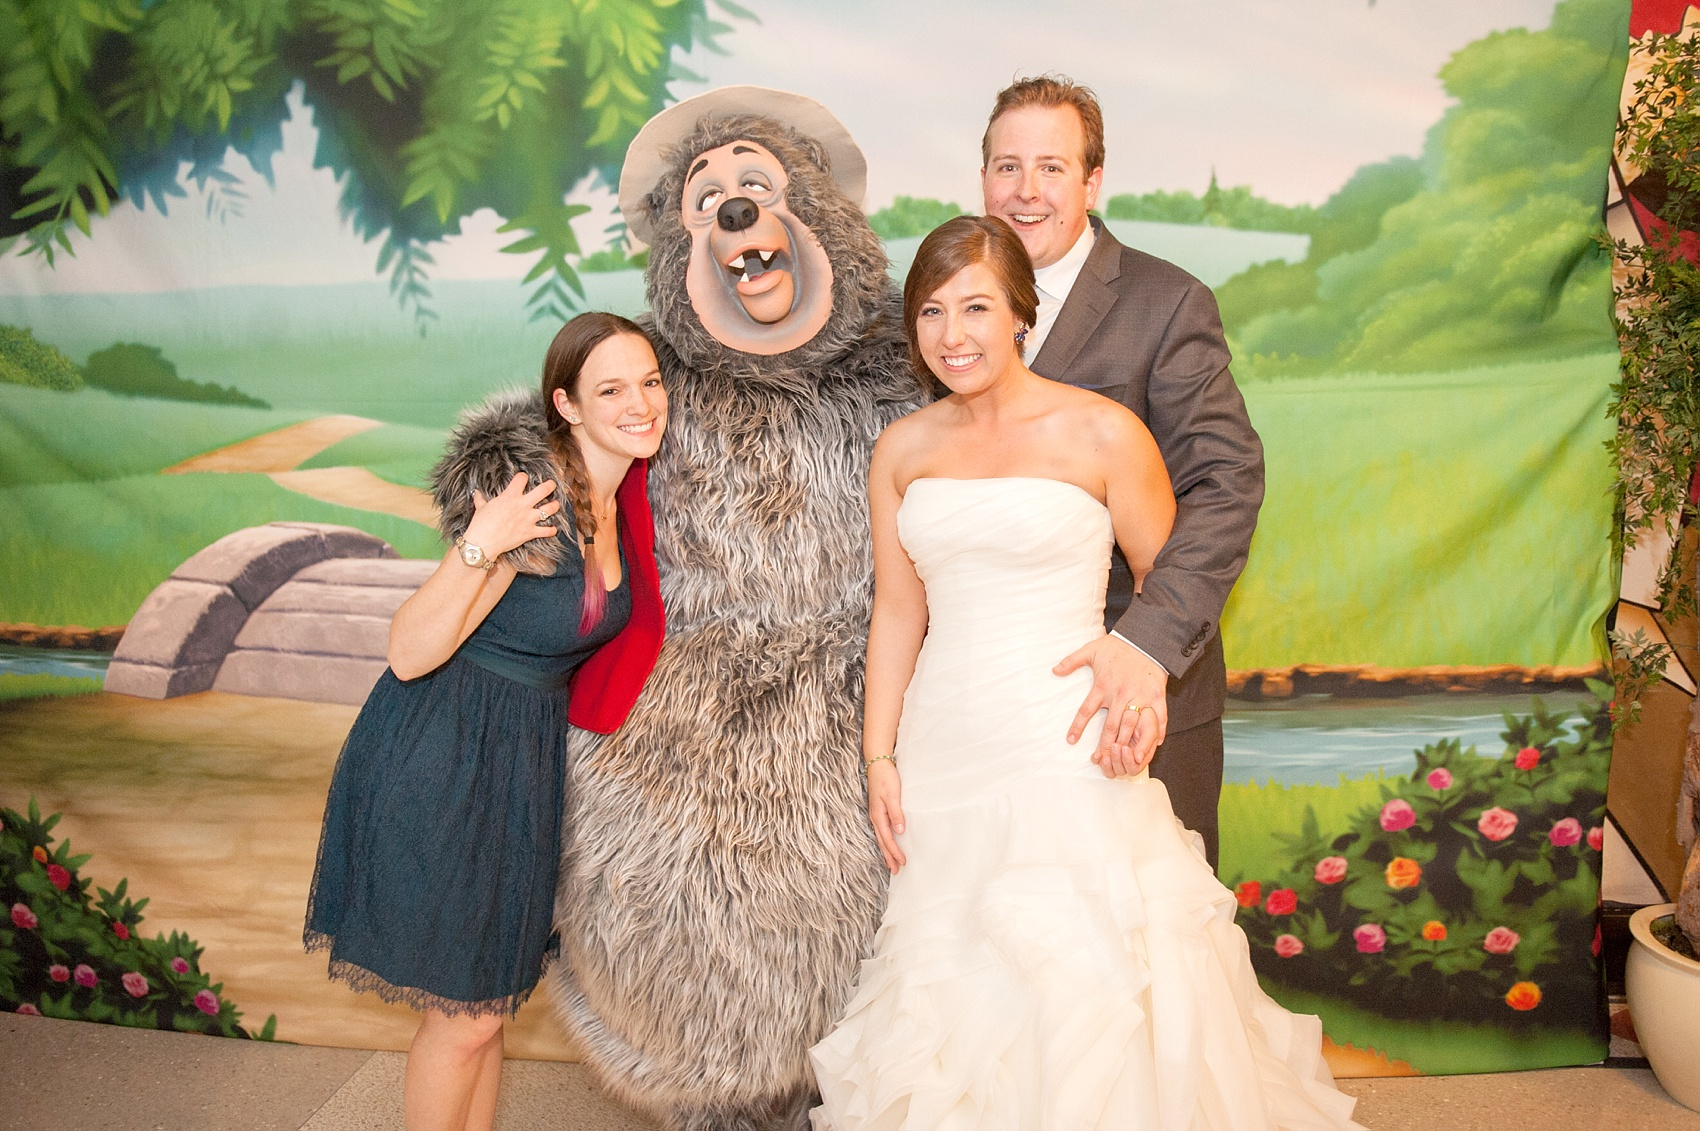 Walt Disney World wedding pictures at the Boardwalk venue, including a waterfront ceremony and Dance Hall reception near Epcot. These photos will give you unique, fun ideas from Glow in the Dark invitations to their Dole Whip flavored cake! Want to see more? Click through to Mikkel Paige Photography for more inspiration from this bride and groom's colorful day! #DisneyWedding #mikkelpaige #disneysboardwalk #DisneyWeddingVenue #DisneyBride #DisneyFan #MickeyEars #CountryBearJamboree